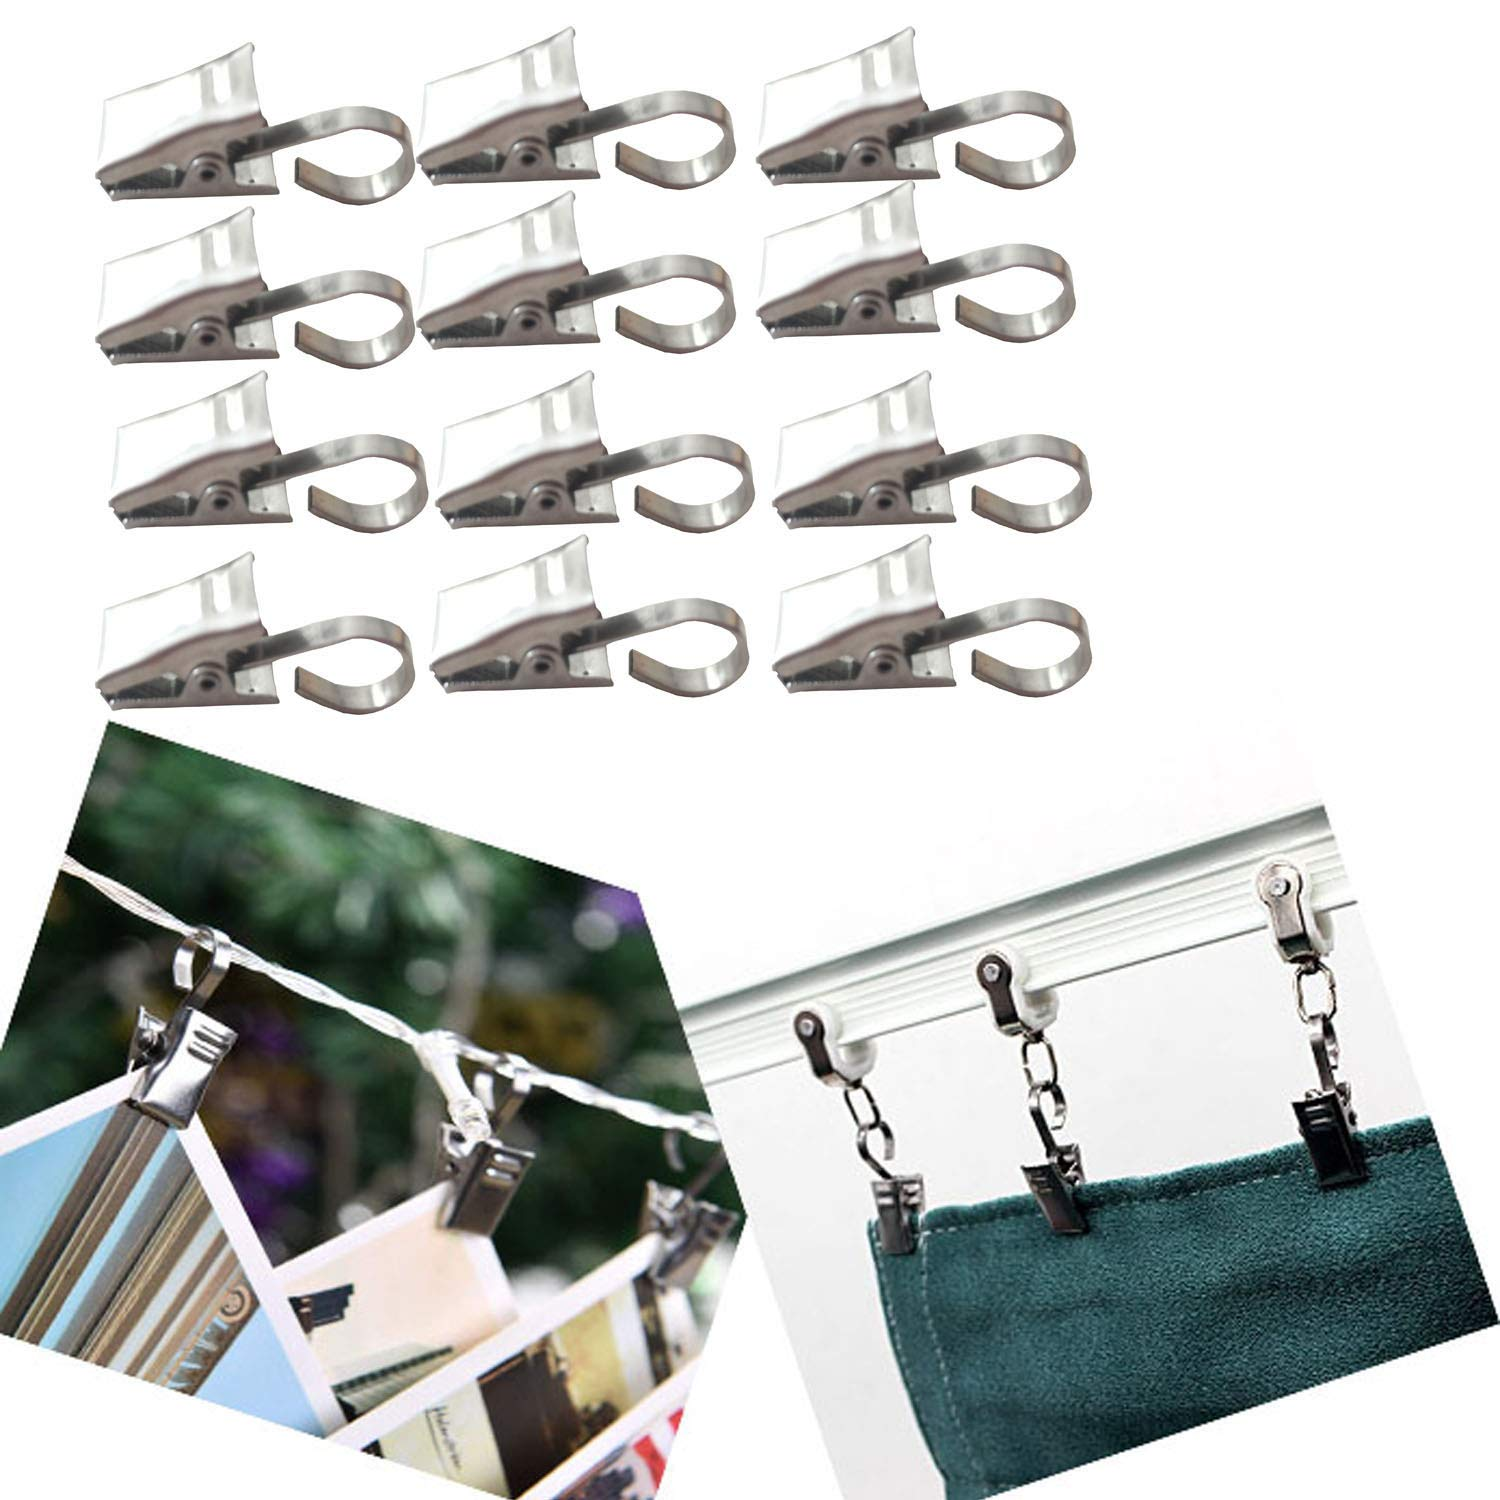 Stainless Steel Curtain Clip String Party Lights Hanger Wire Holder for Showers, Bedroom, Living Room, Home Decoration, Photos, Art Craft Dispaly and Outdoor Activities Supplies (30 Hooks) Guang-T